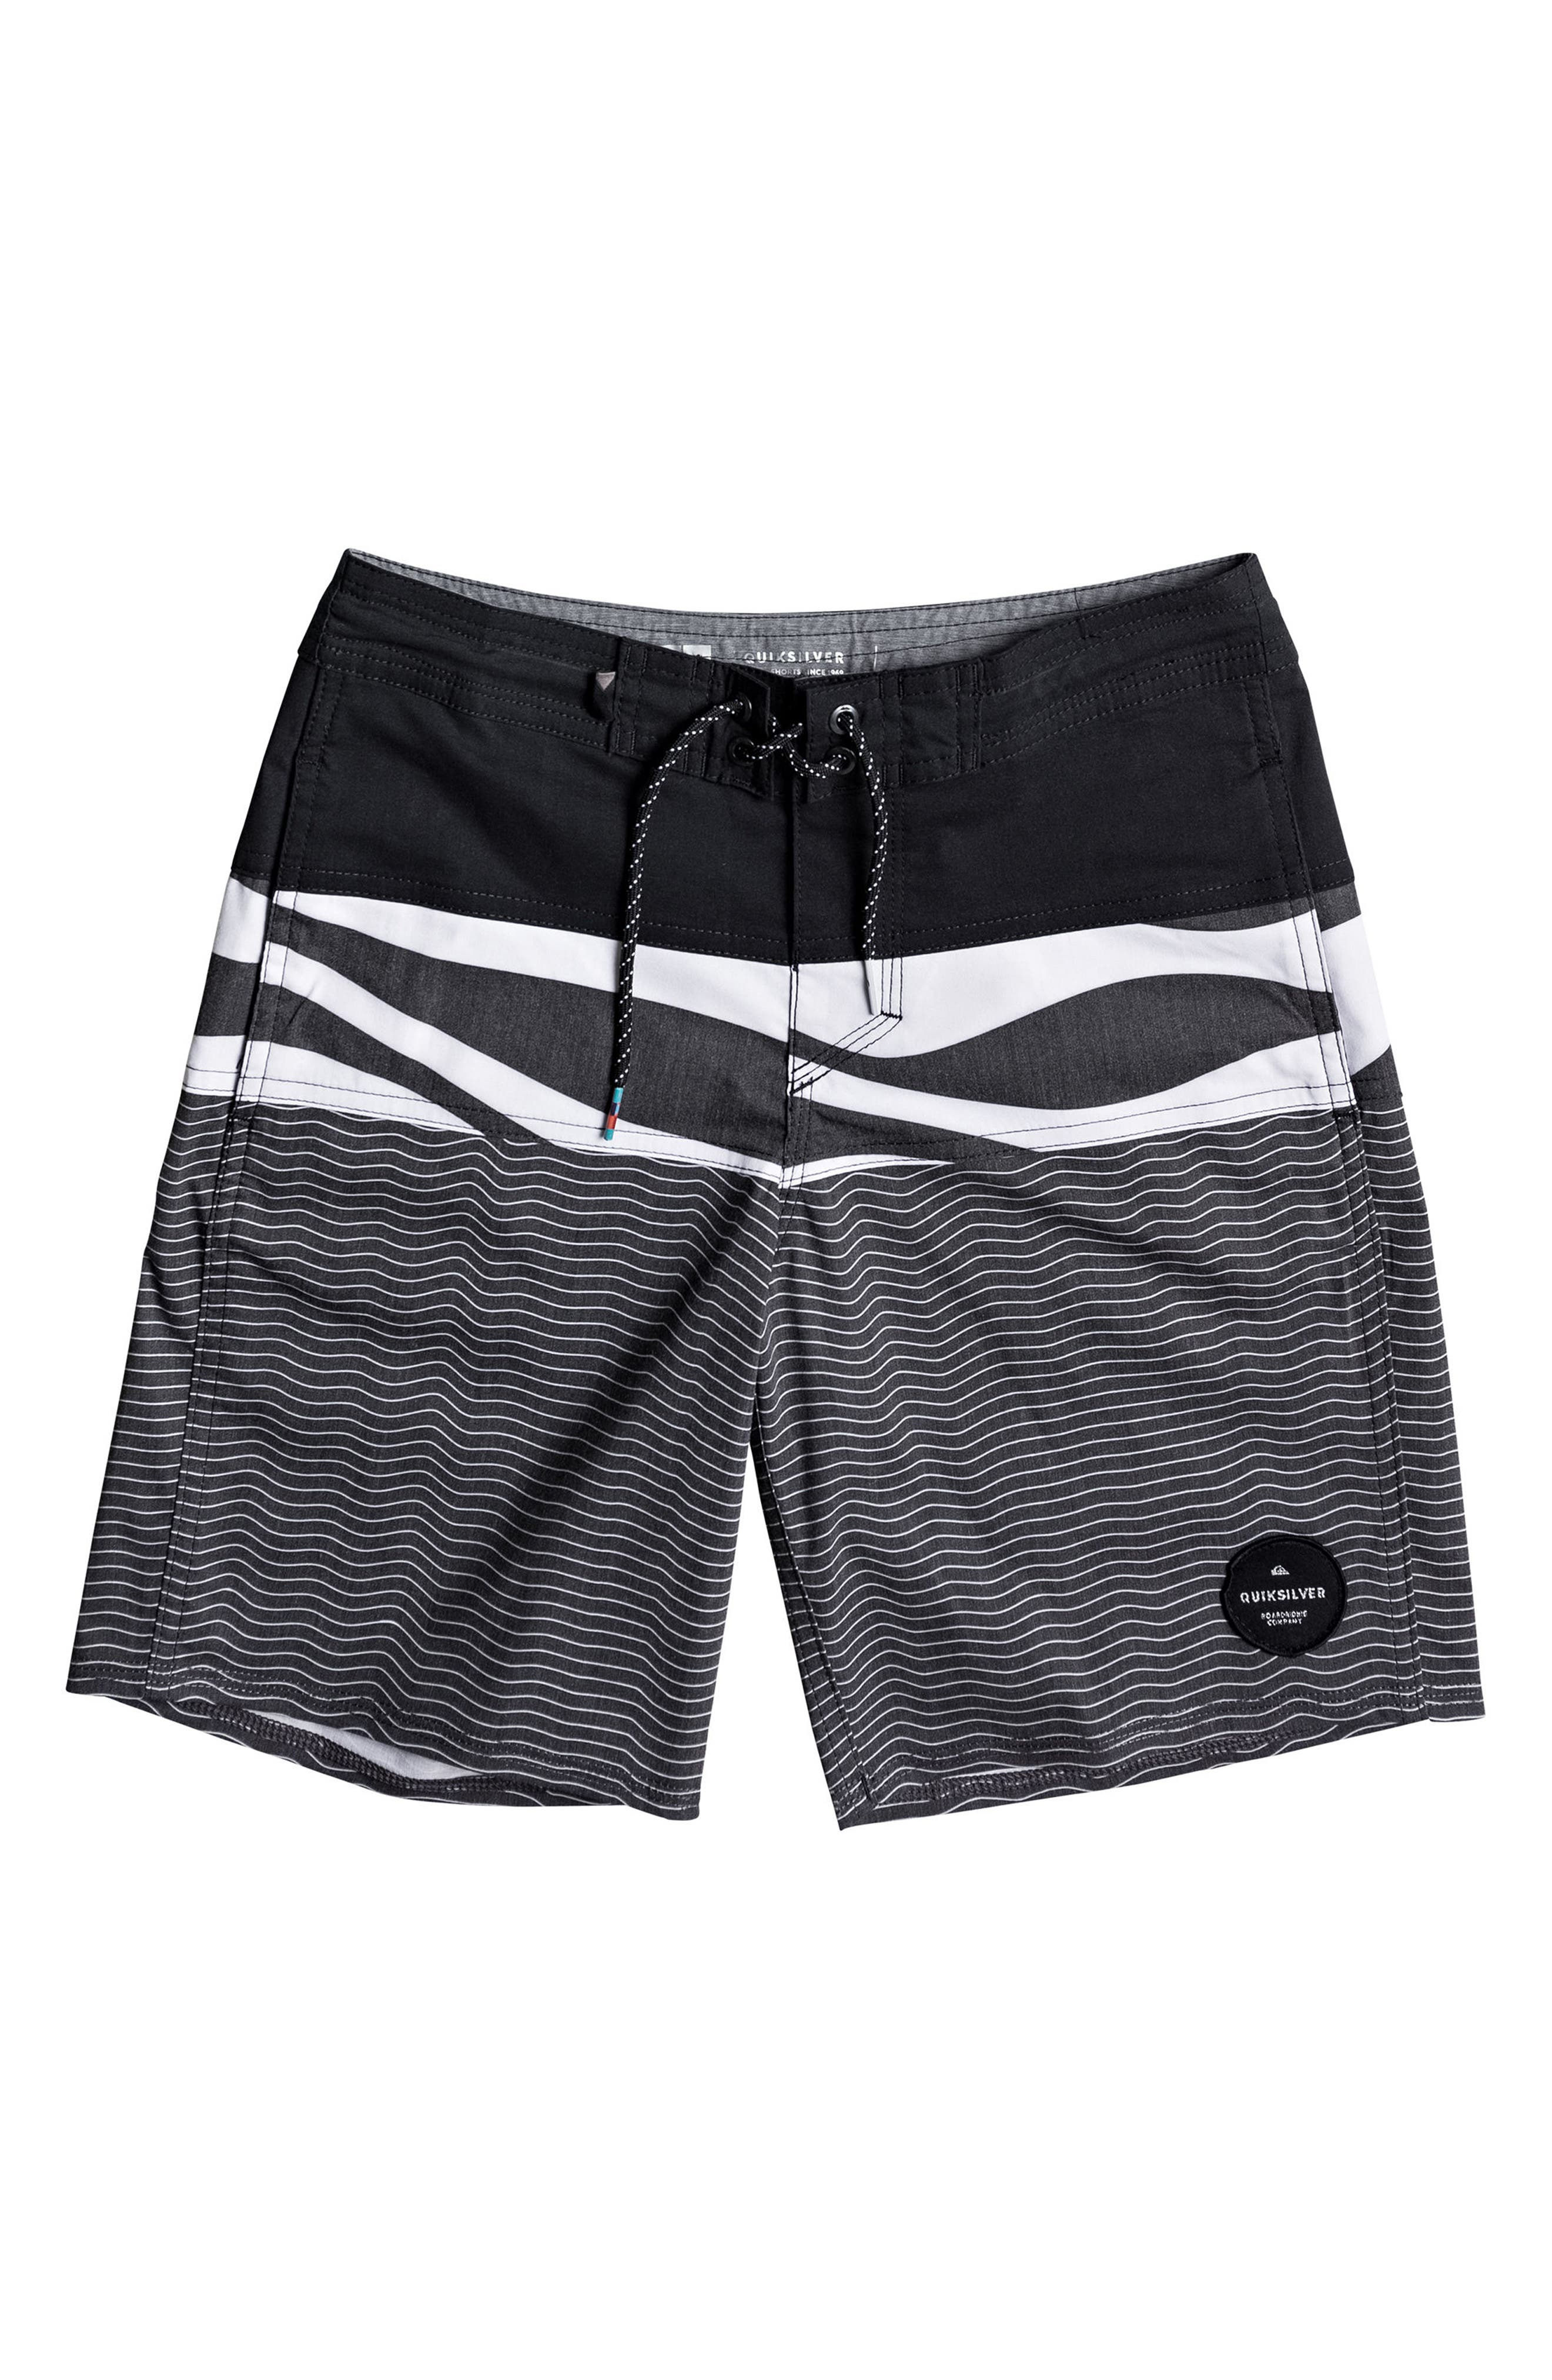 Quiksilver Heatwave Blocked Beach Shorts (Big Boys)